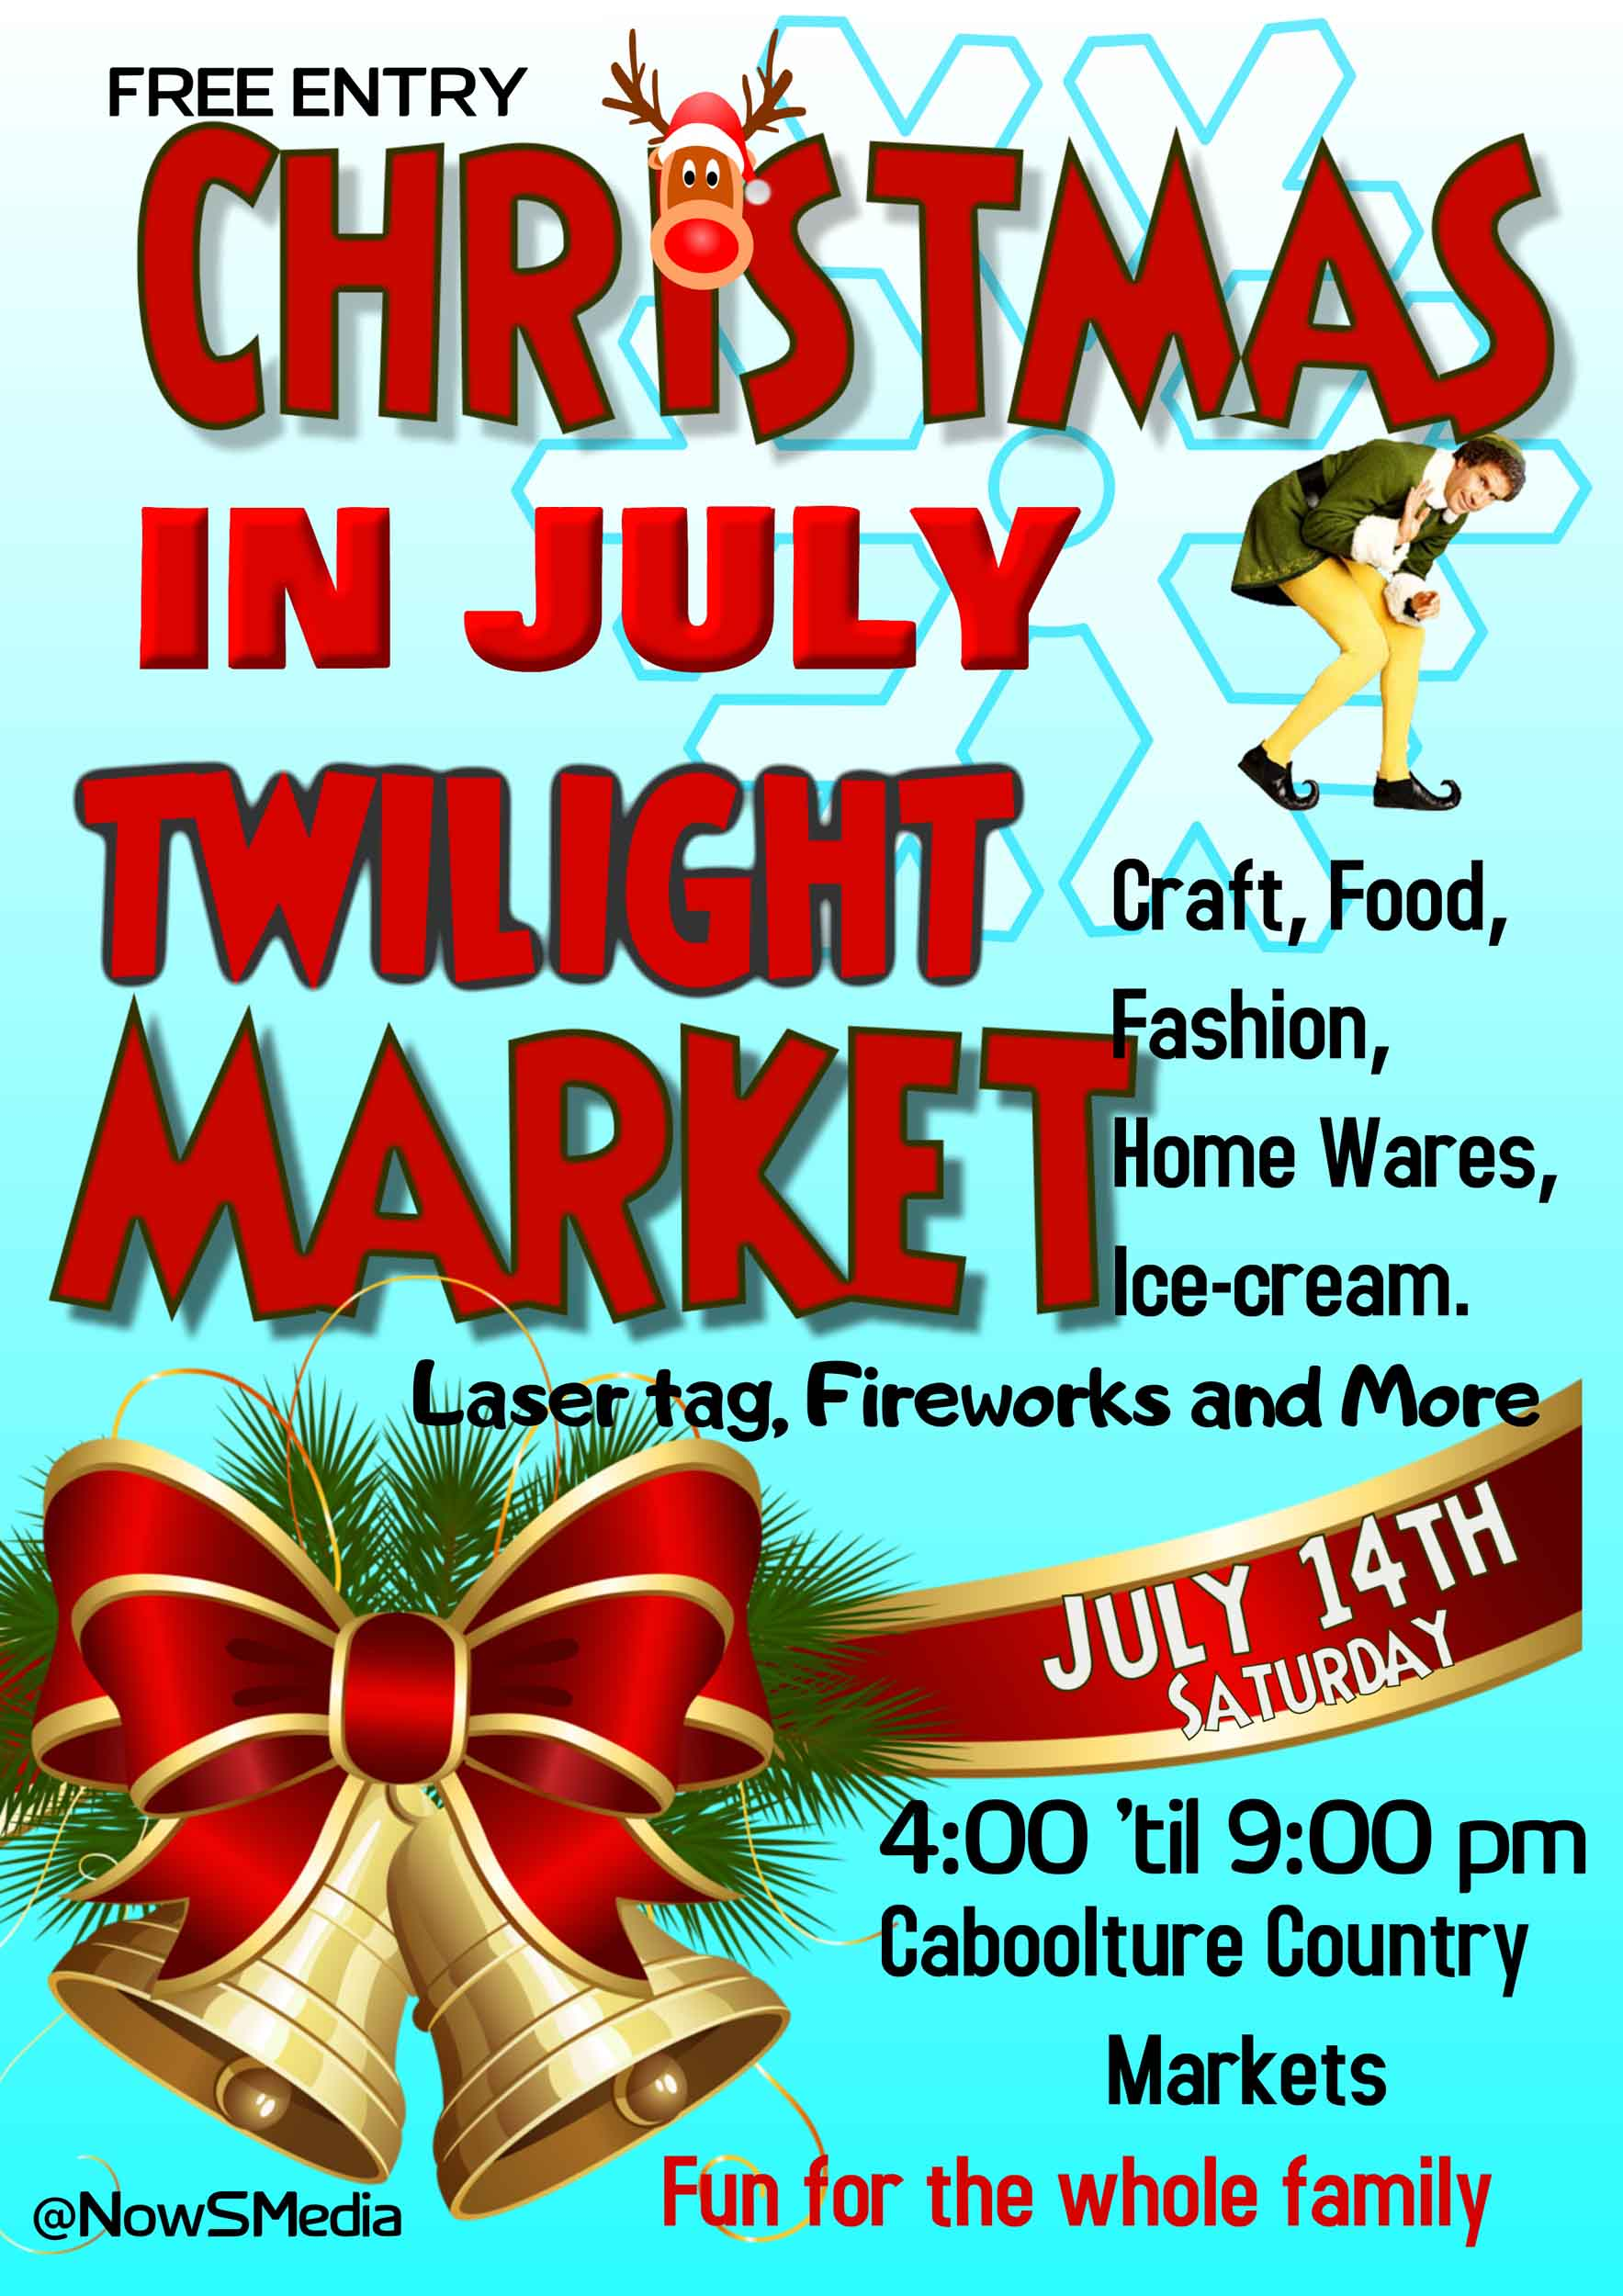 Christmas in july Market 2018